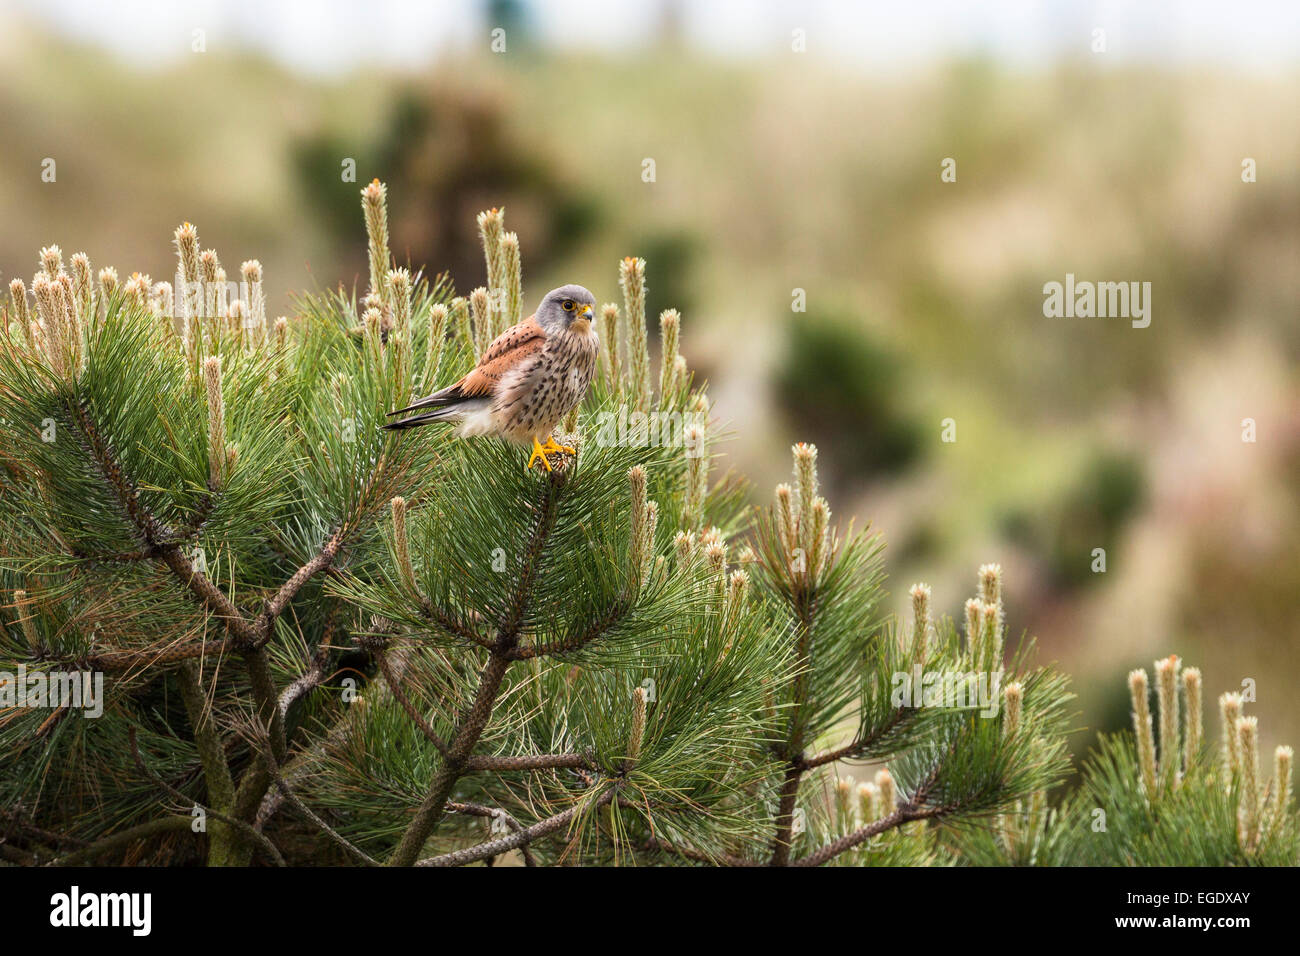 Kestrel in a pine tree, Falco tinnunculus, male, Spiekeroog Island, Nationalpark, North Sea, East Frisian Islands, - Stock Image